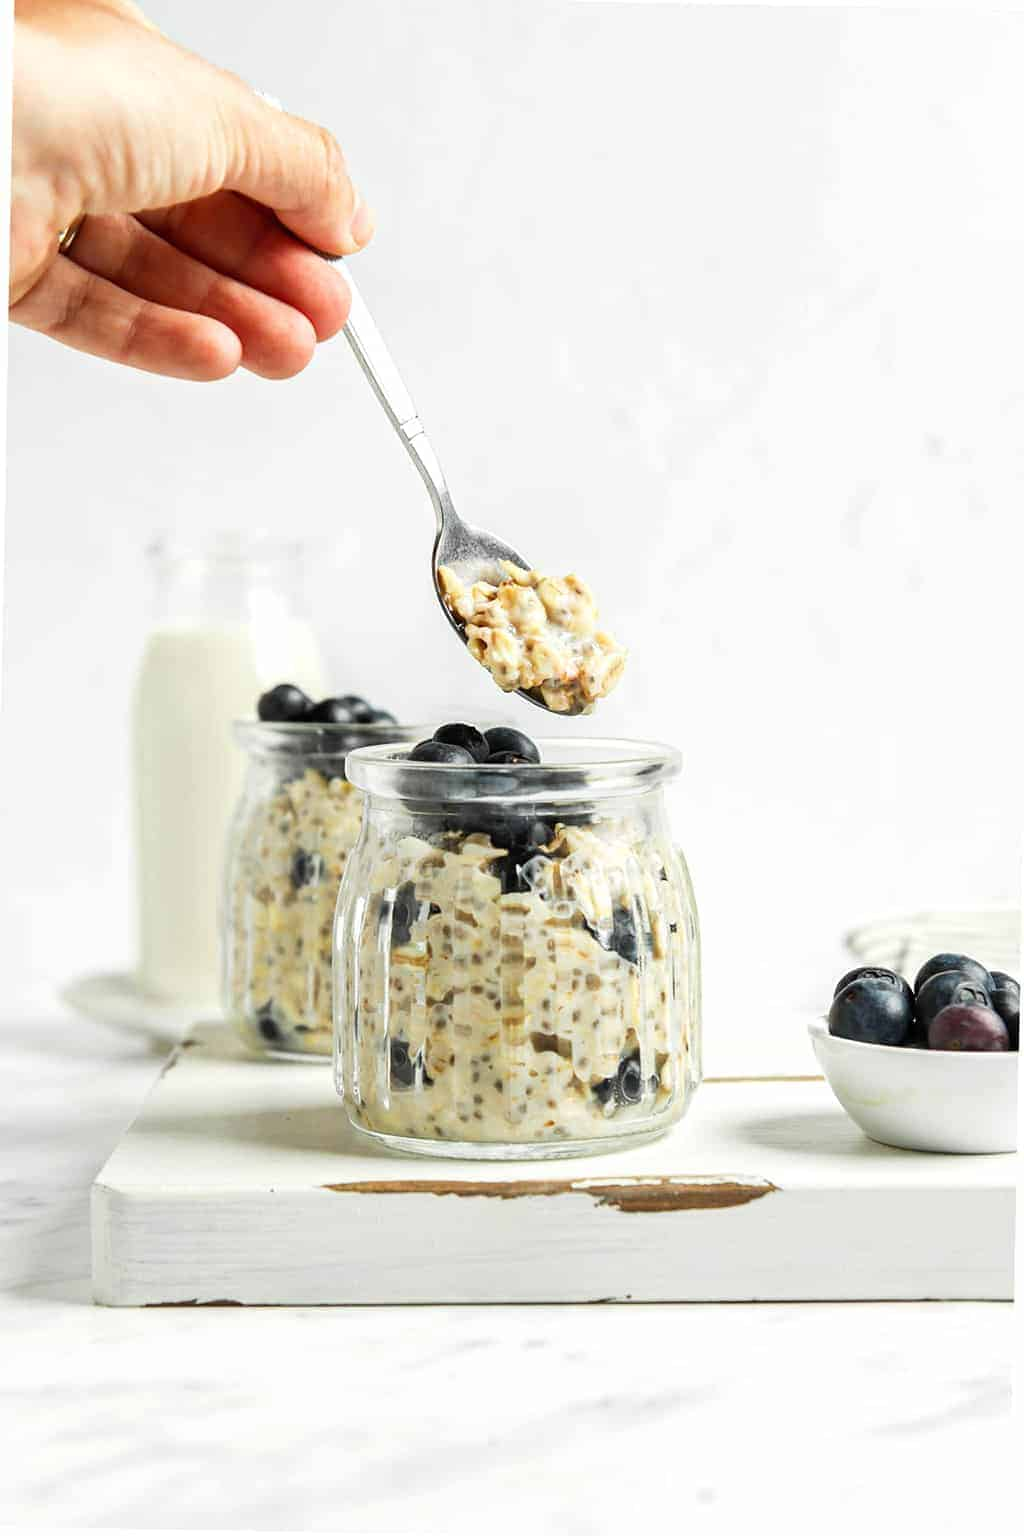 Hand holding a spoonful of overnight oats over finished oats.